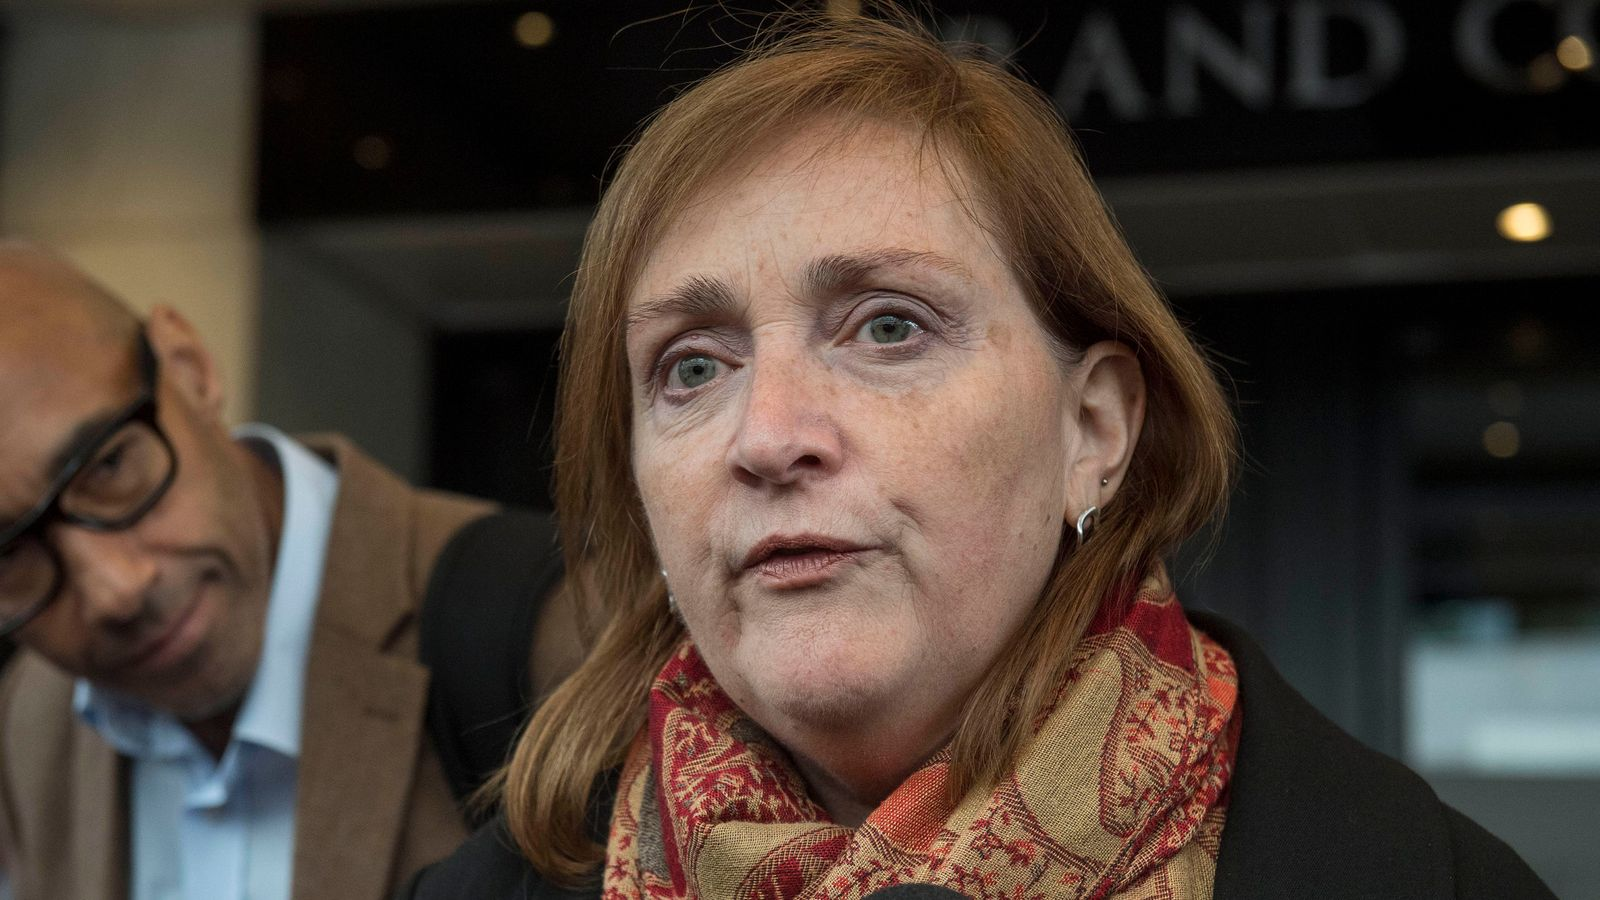 No action against Emma Dent Coad over 'token ghetto boy' comment